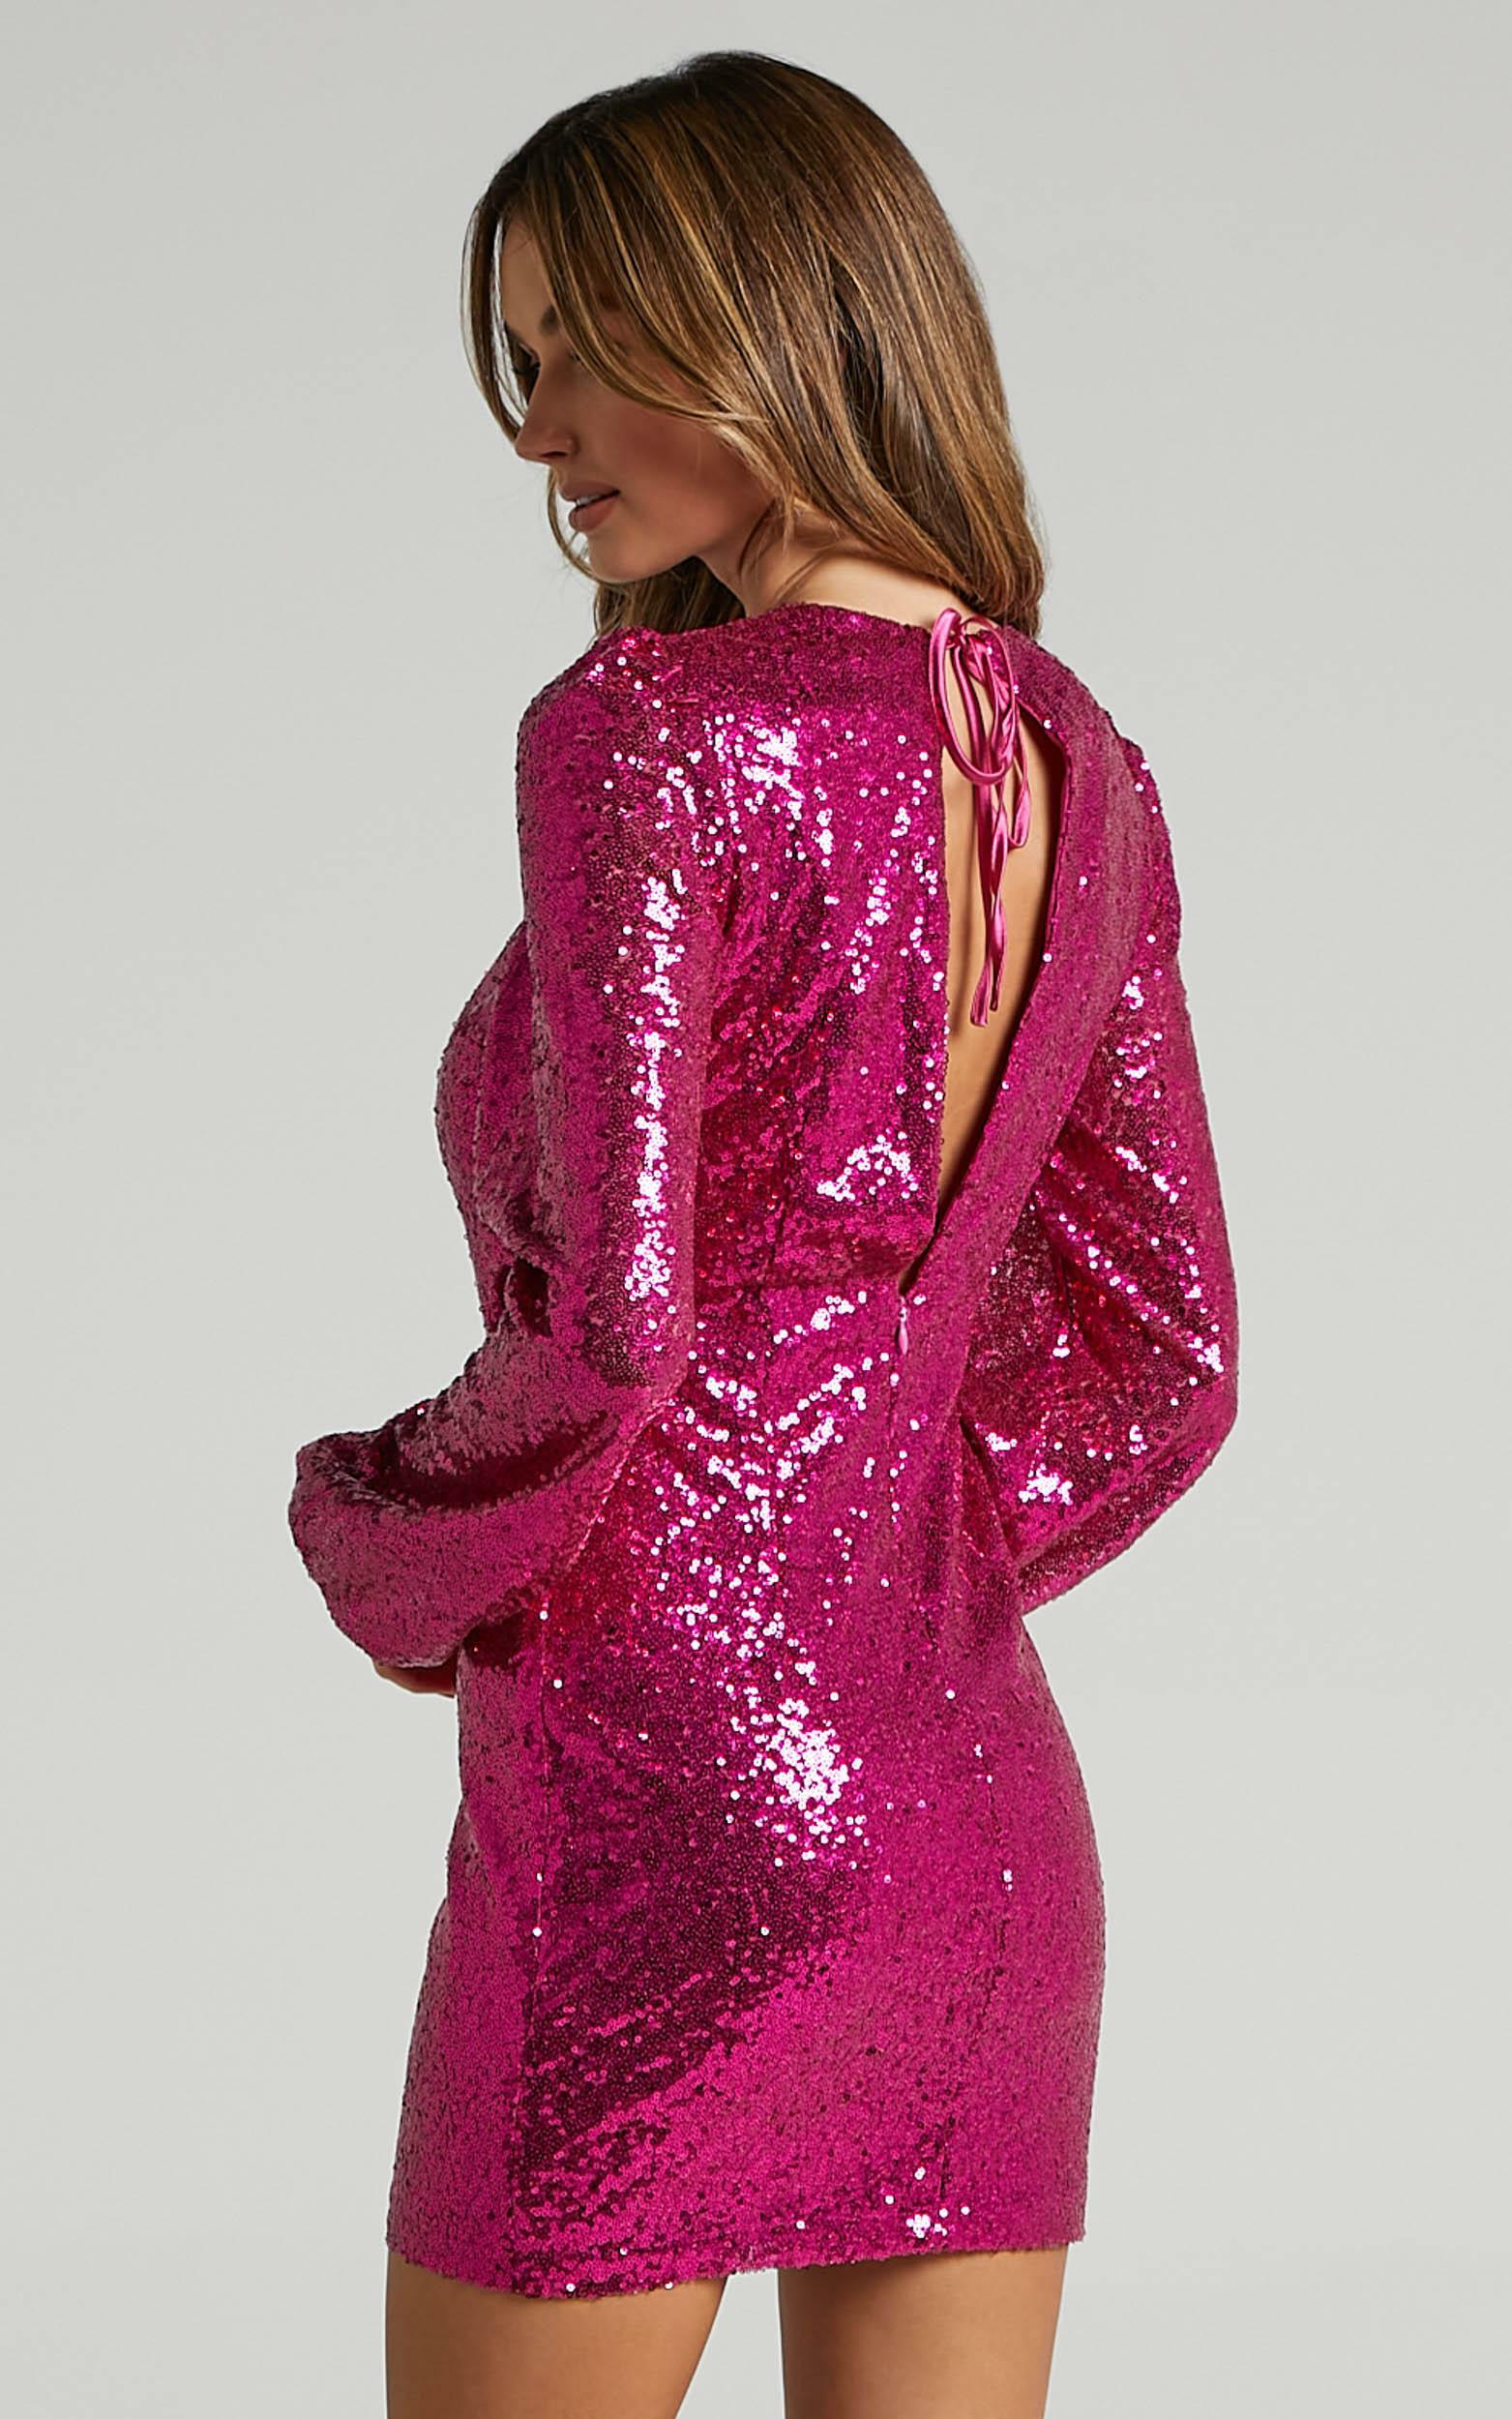 Bambie Dress in Pink - 06, PNK2, hi-res image number null